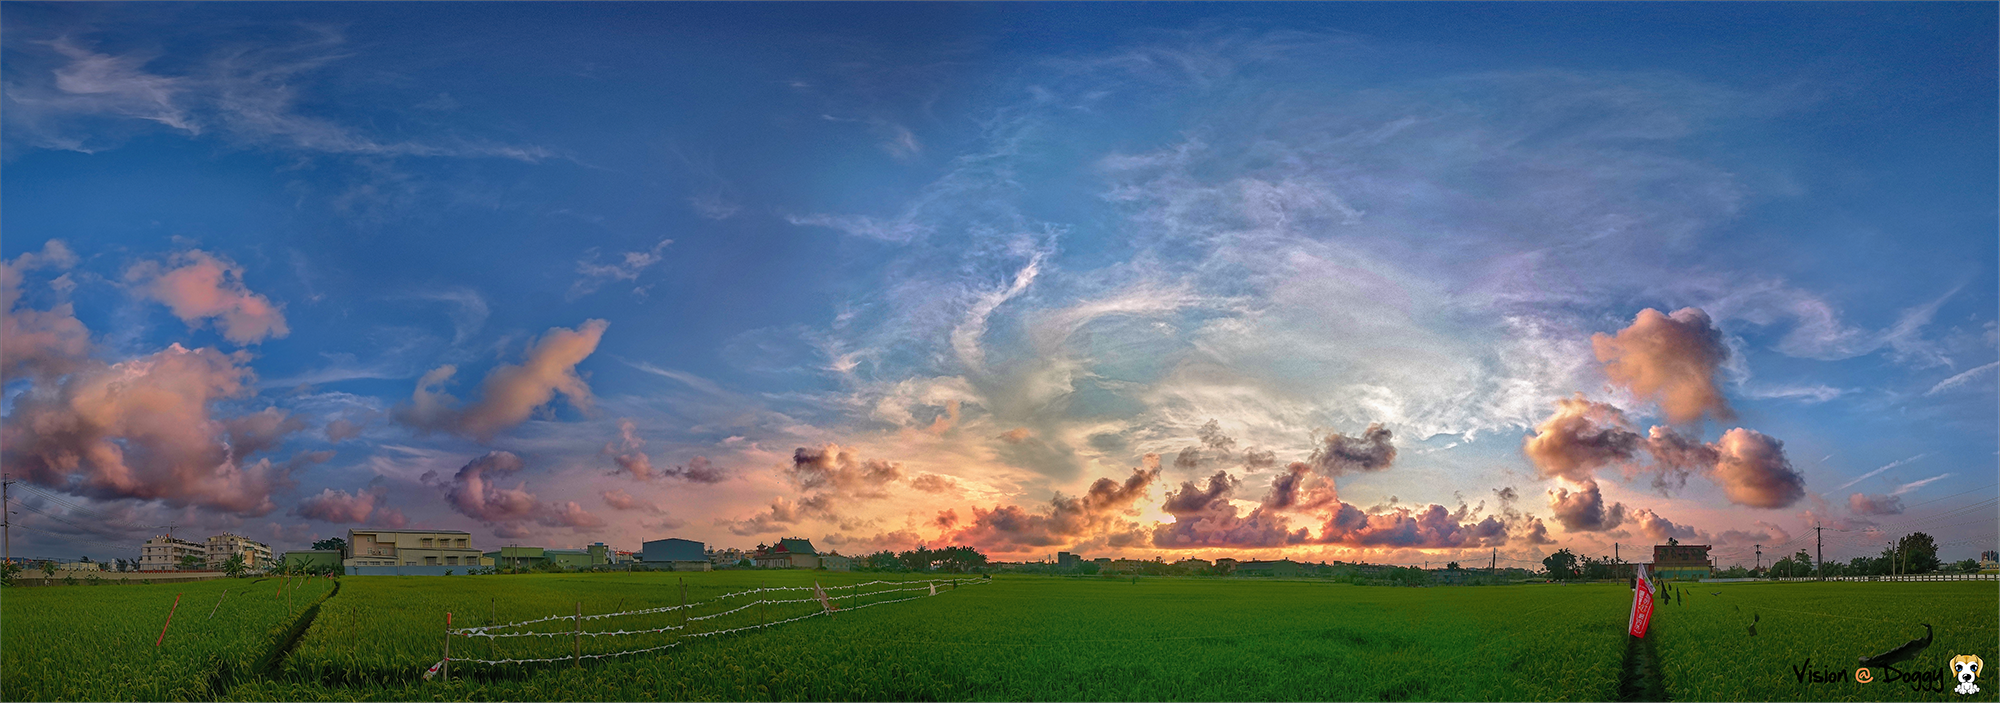 http://gnl.hunternet.com.tw/weider/web/wp-content/gallery/keliao/pic-20180501-01sunset.png